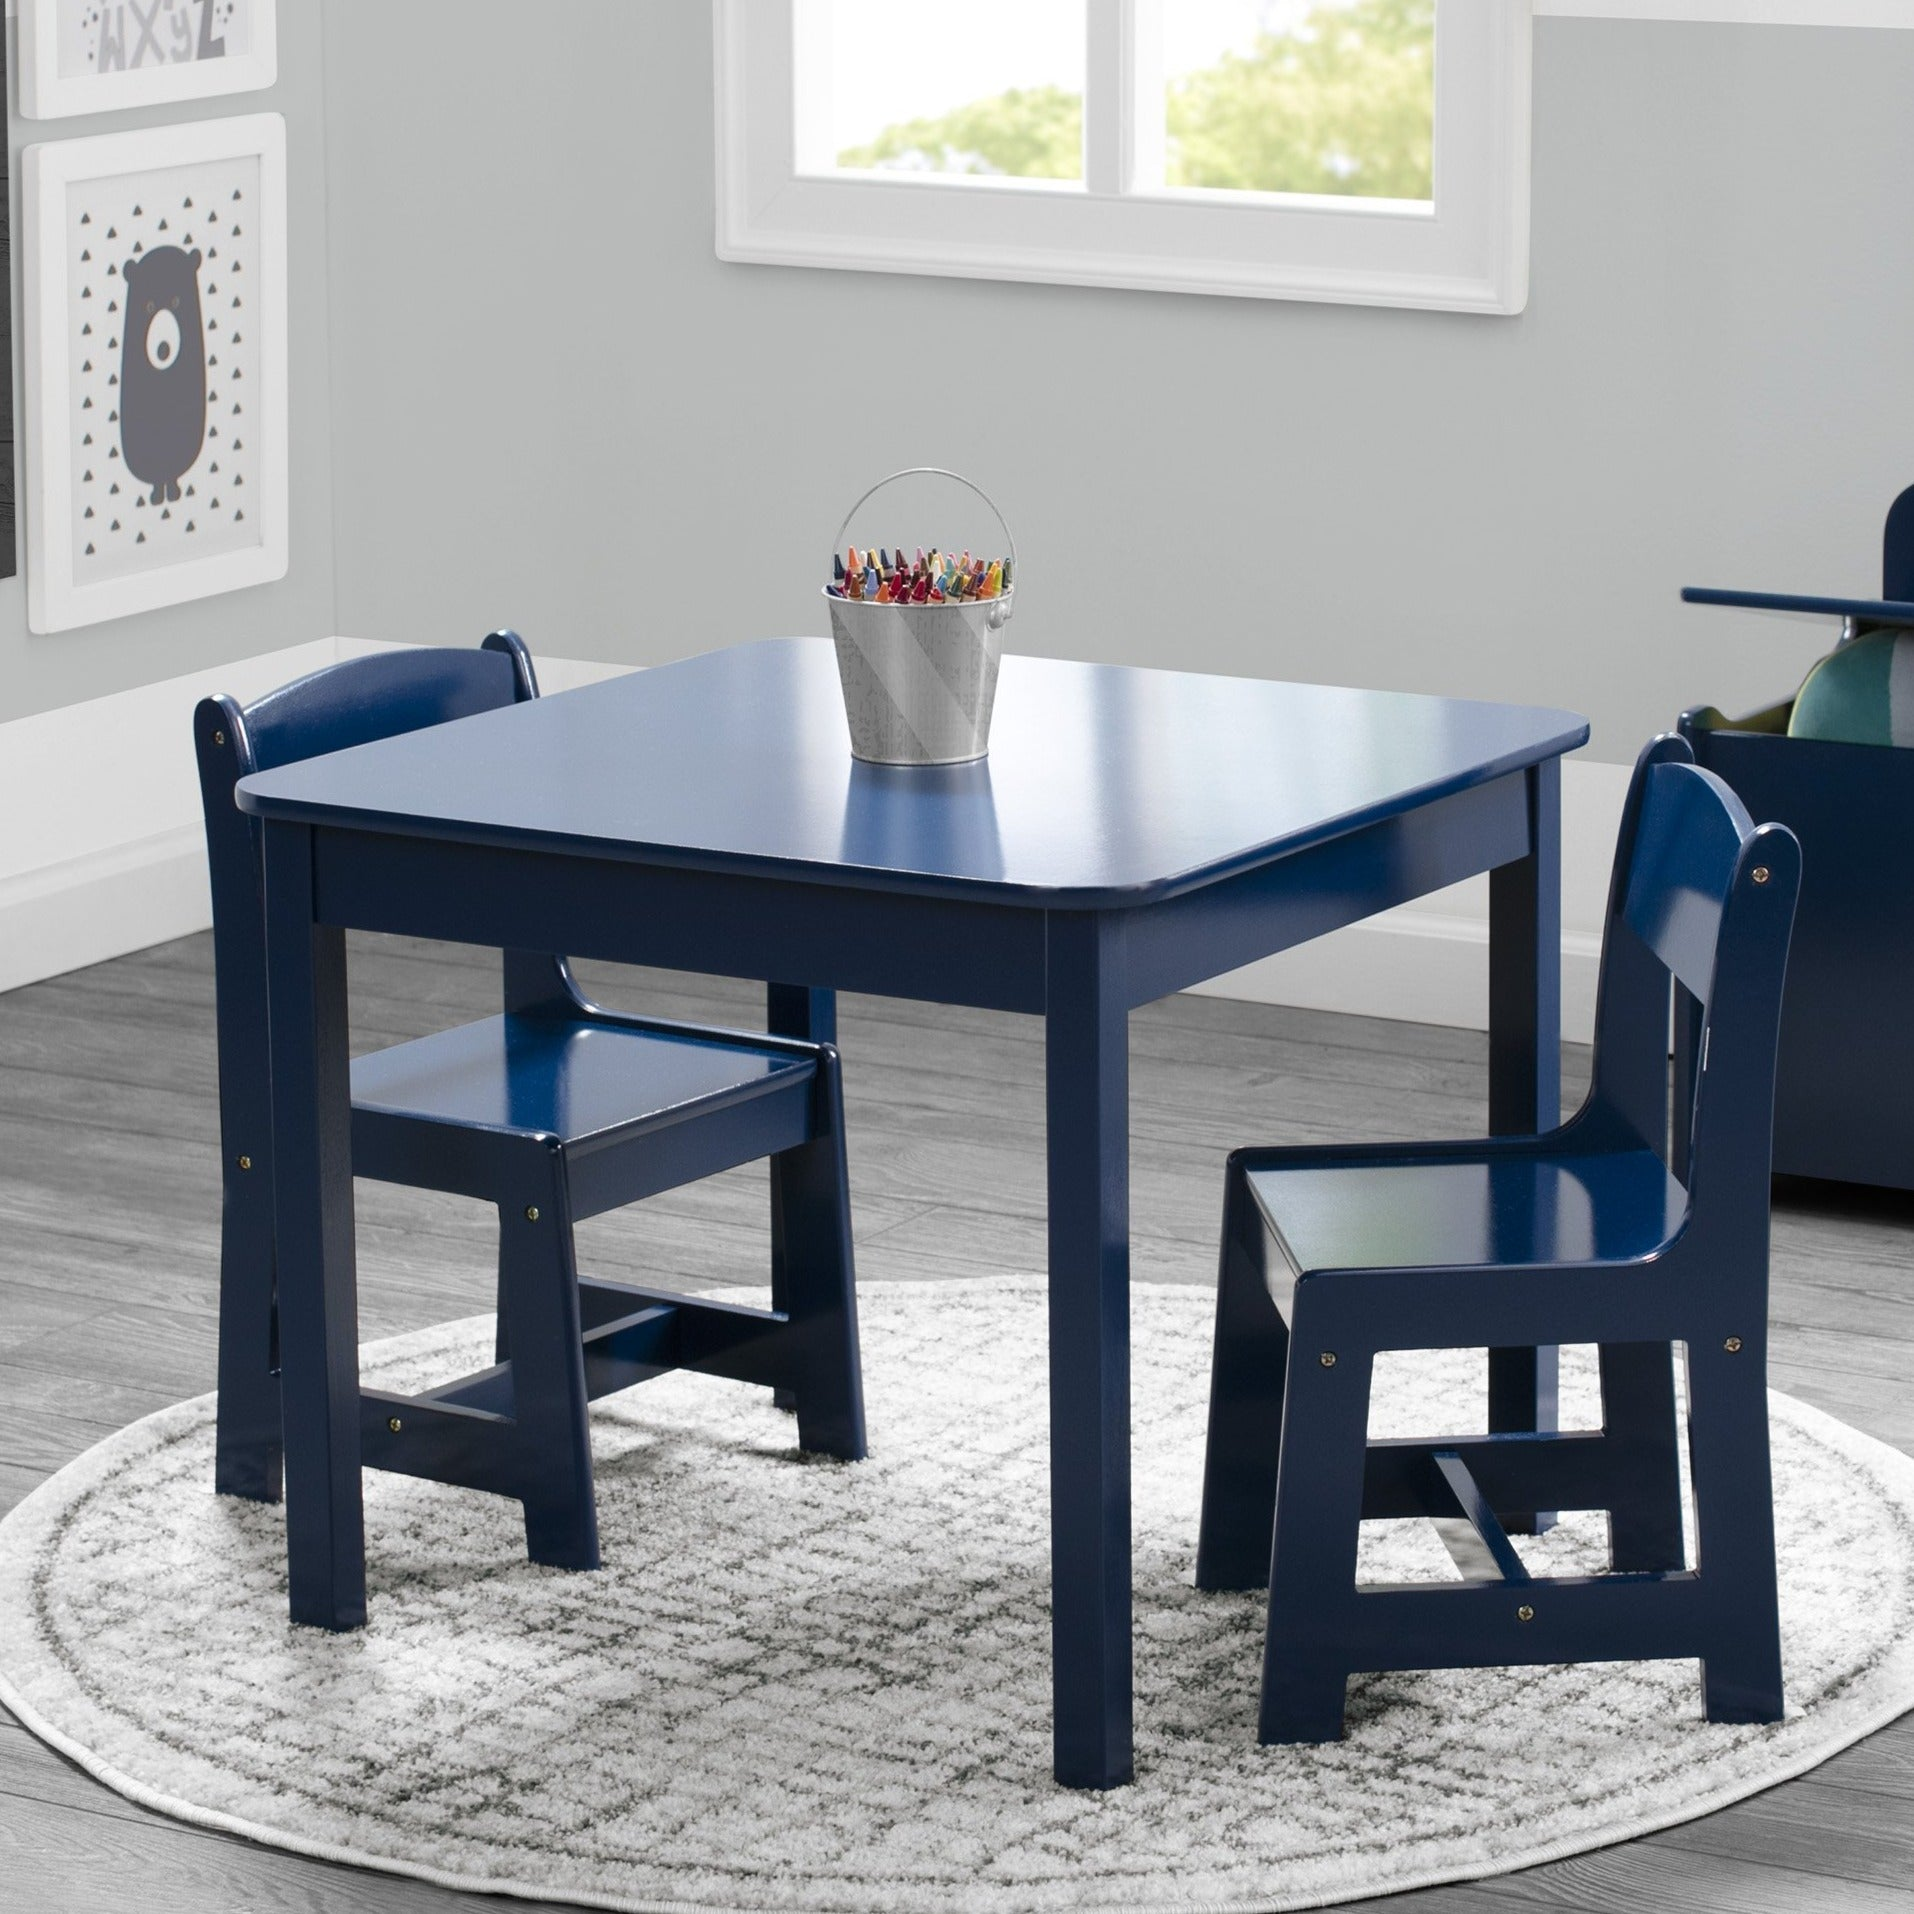 Delta Children Deep Blue (295C) MySize Table & Chairs Set, Room View